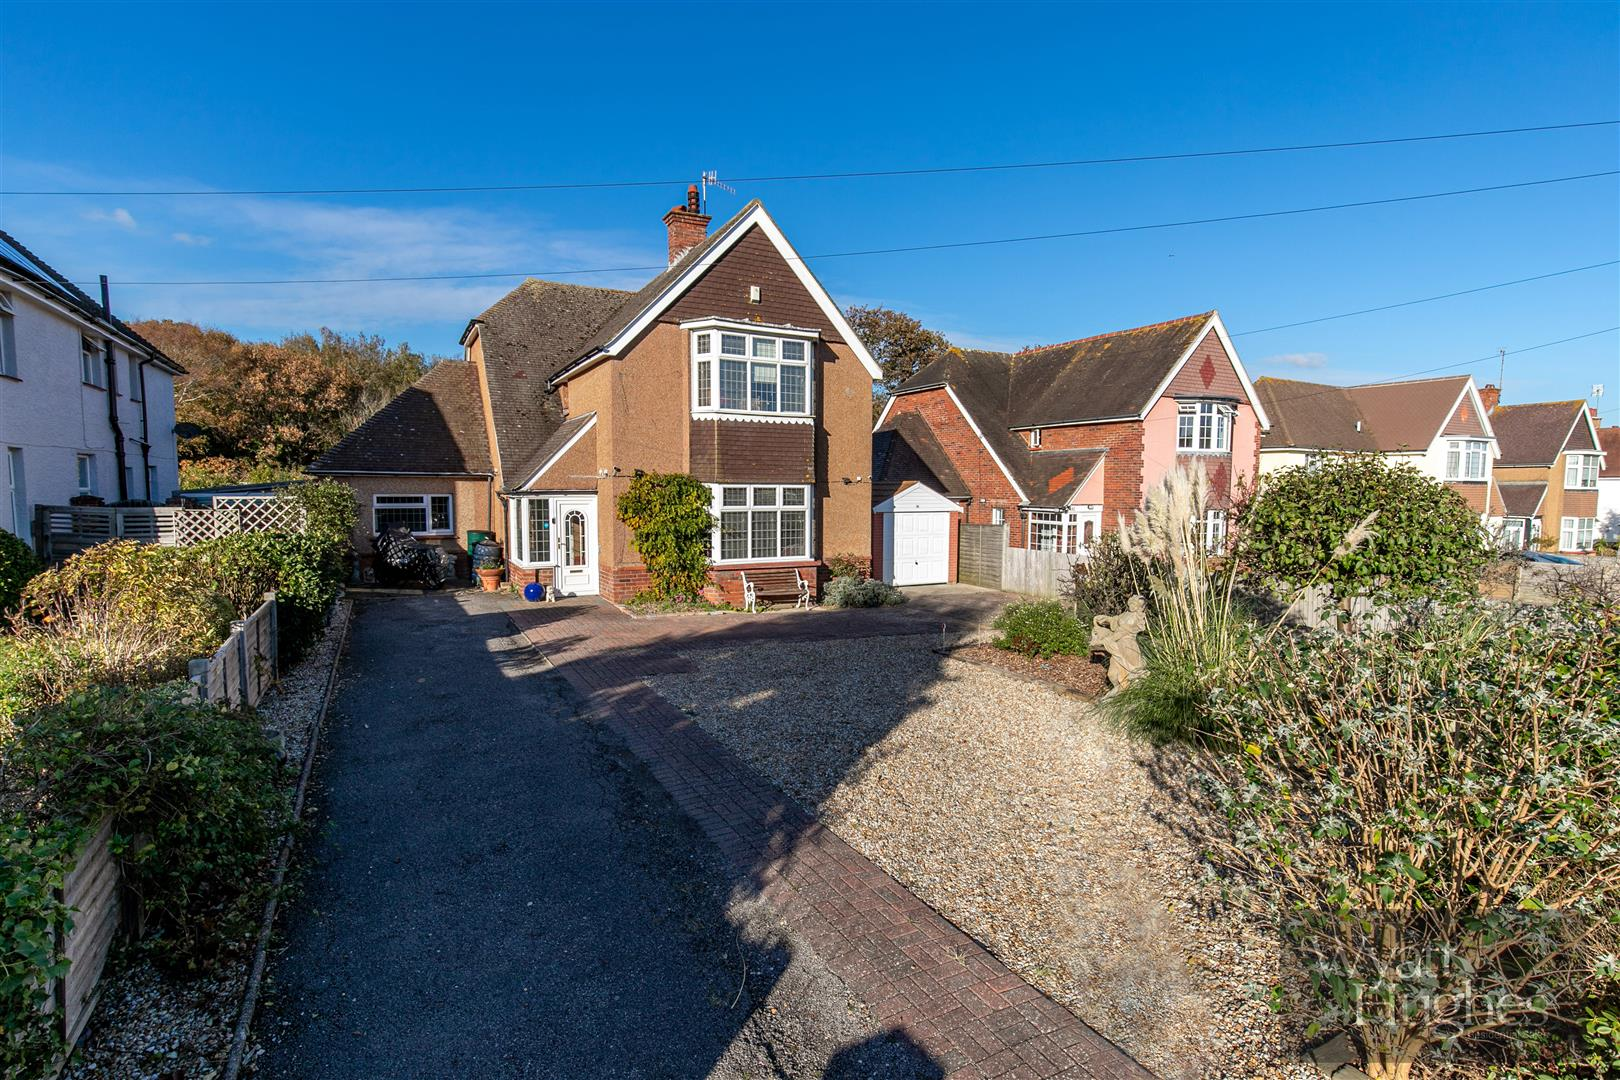 5 bed detached house for sale in Cooden Drive, Bexhill-On-Sea, TN39